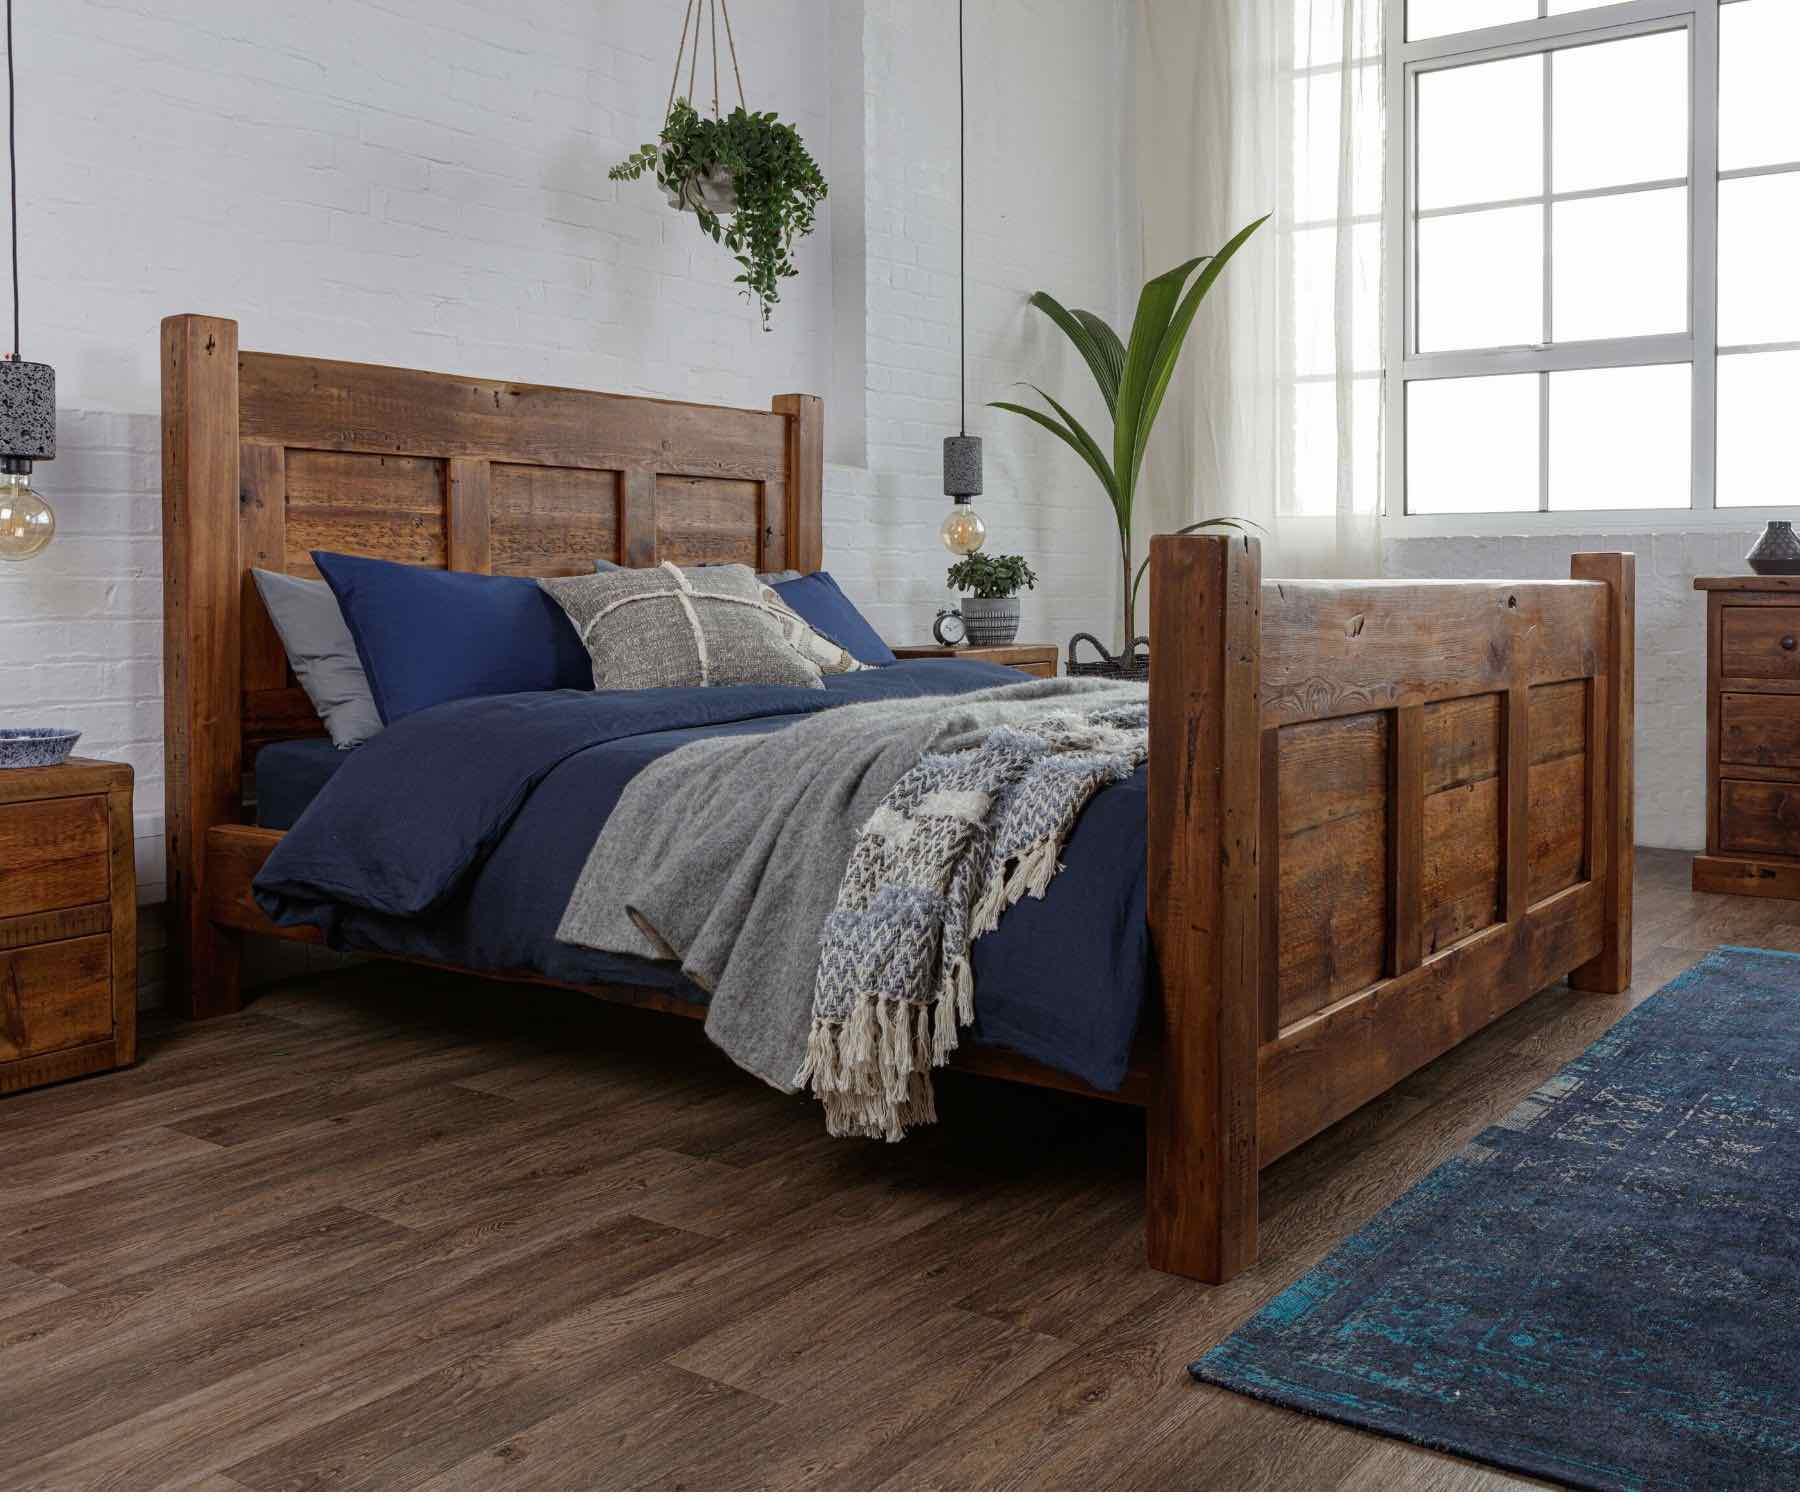 Large reclaimed wood bed with blue bedding